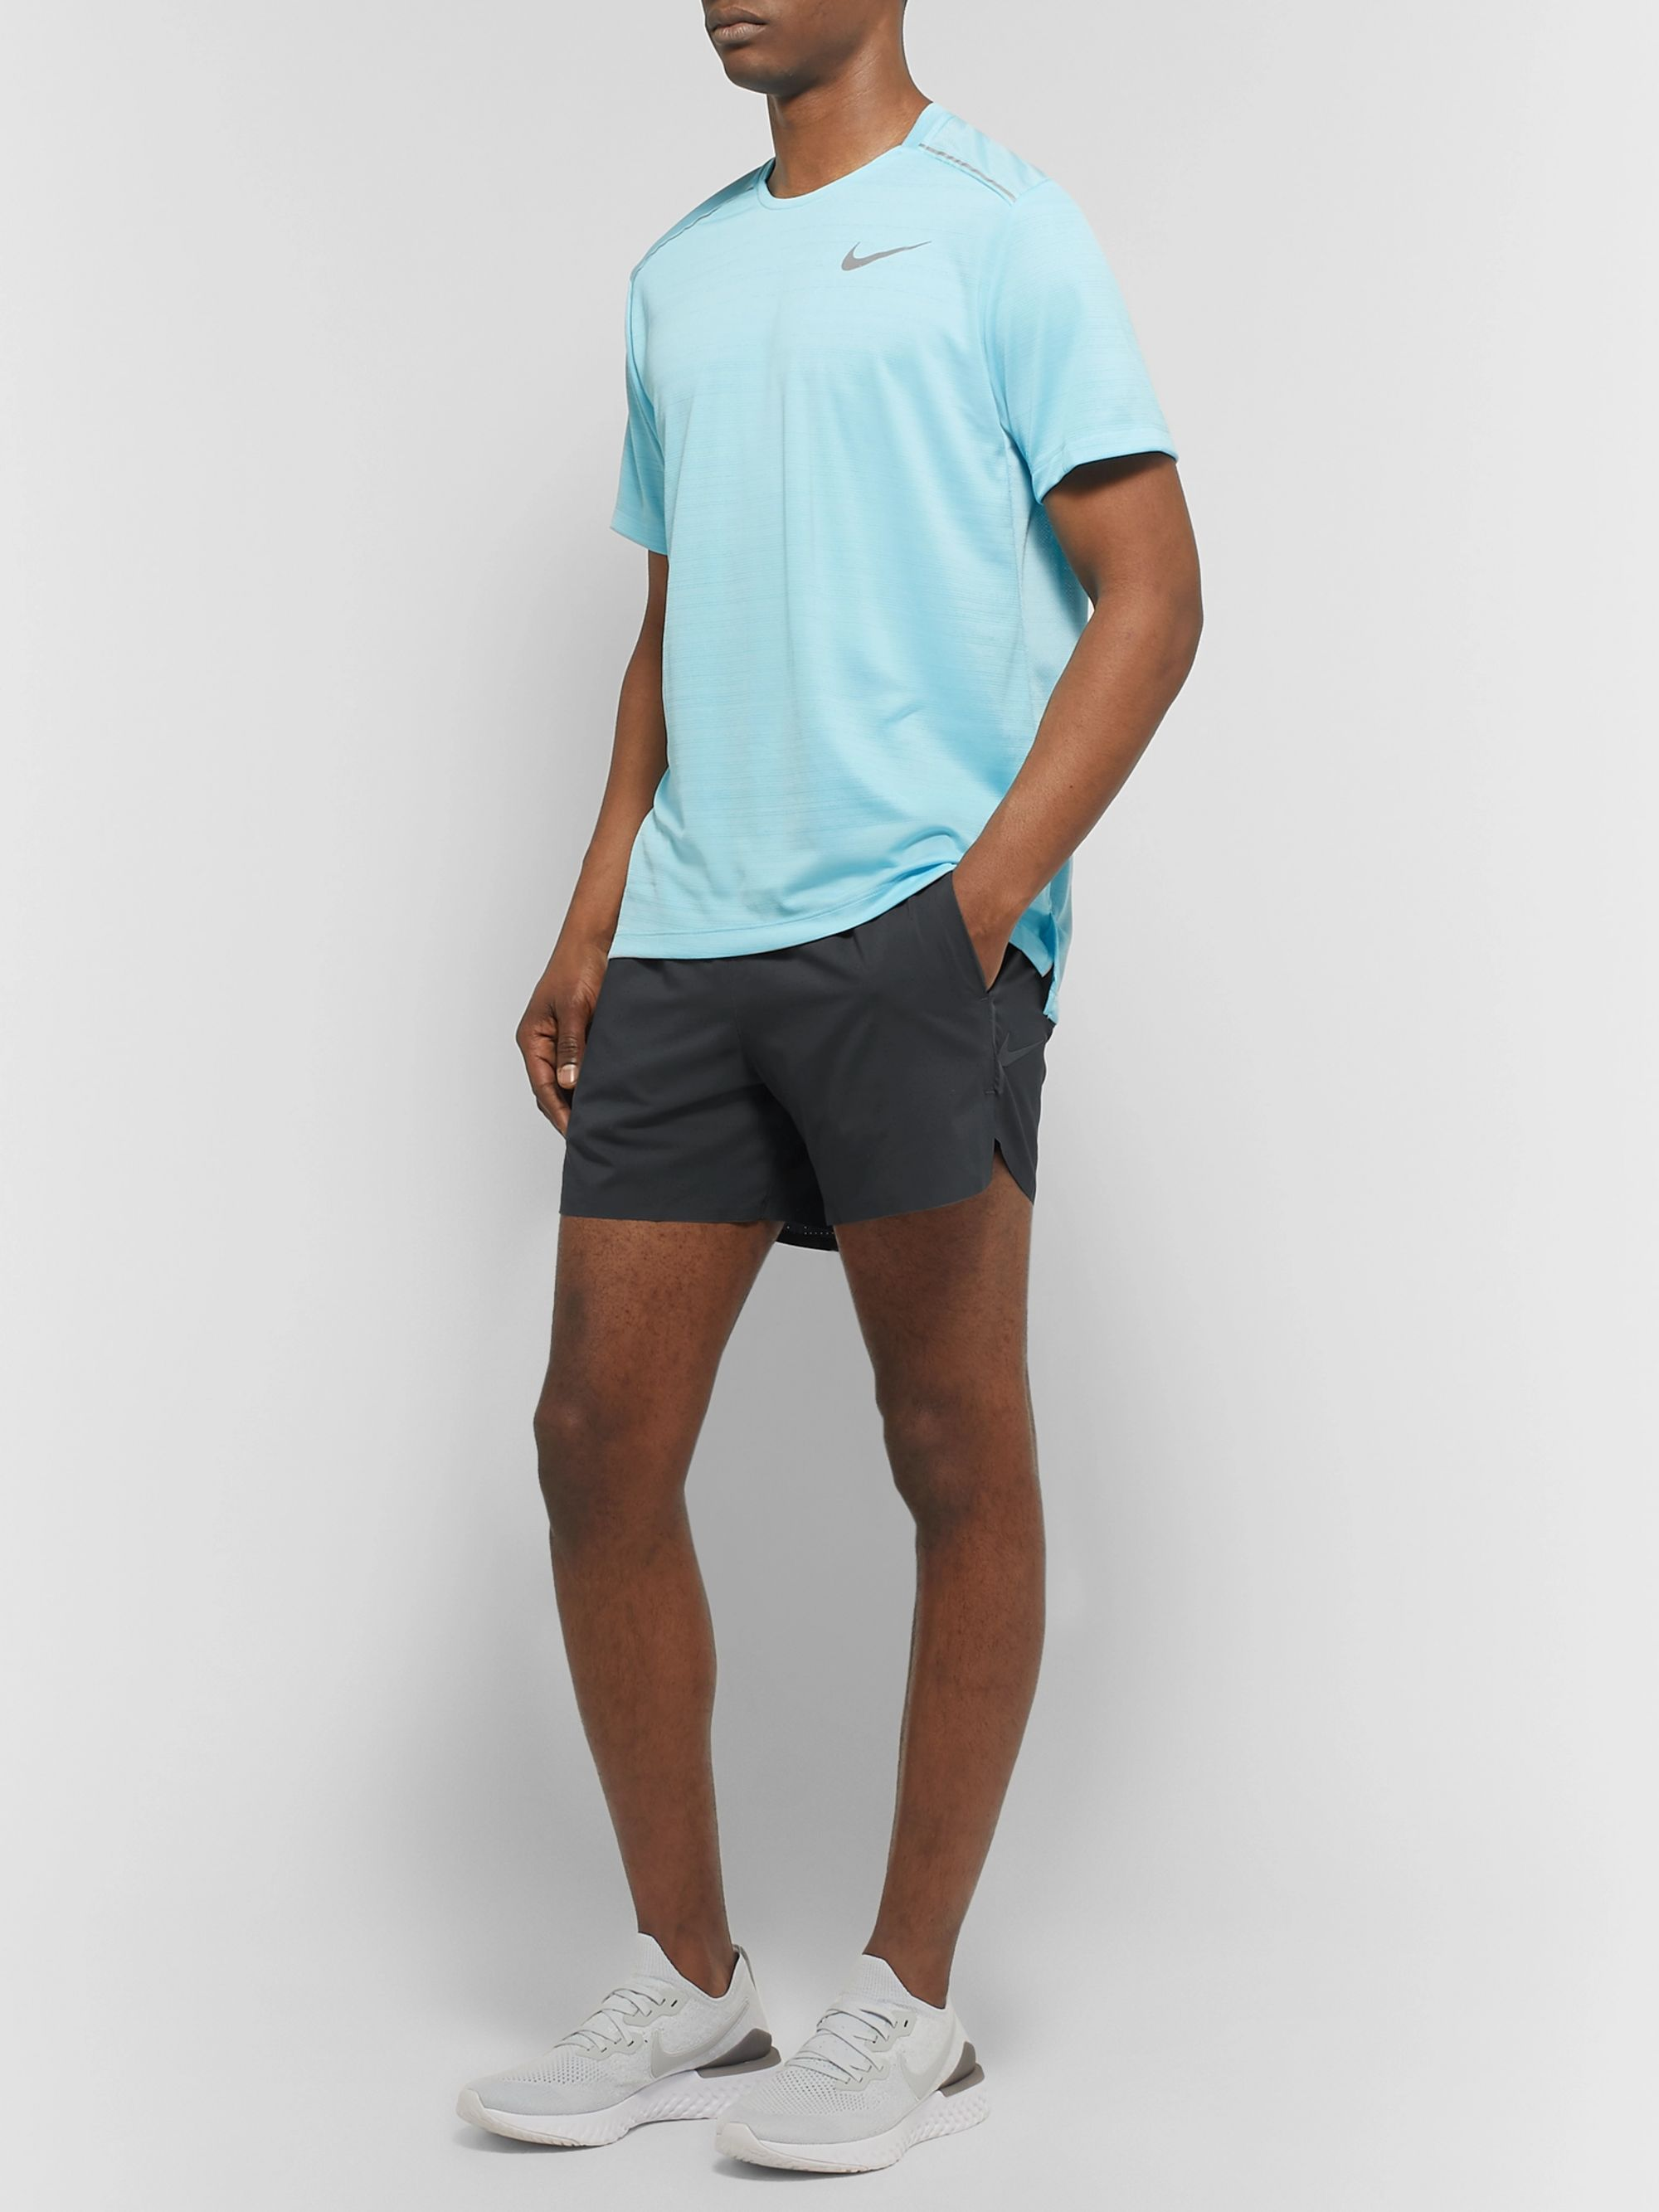 Nike Running Tech Pack Flex Perforated Dri-FIT Shorts